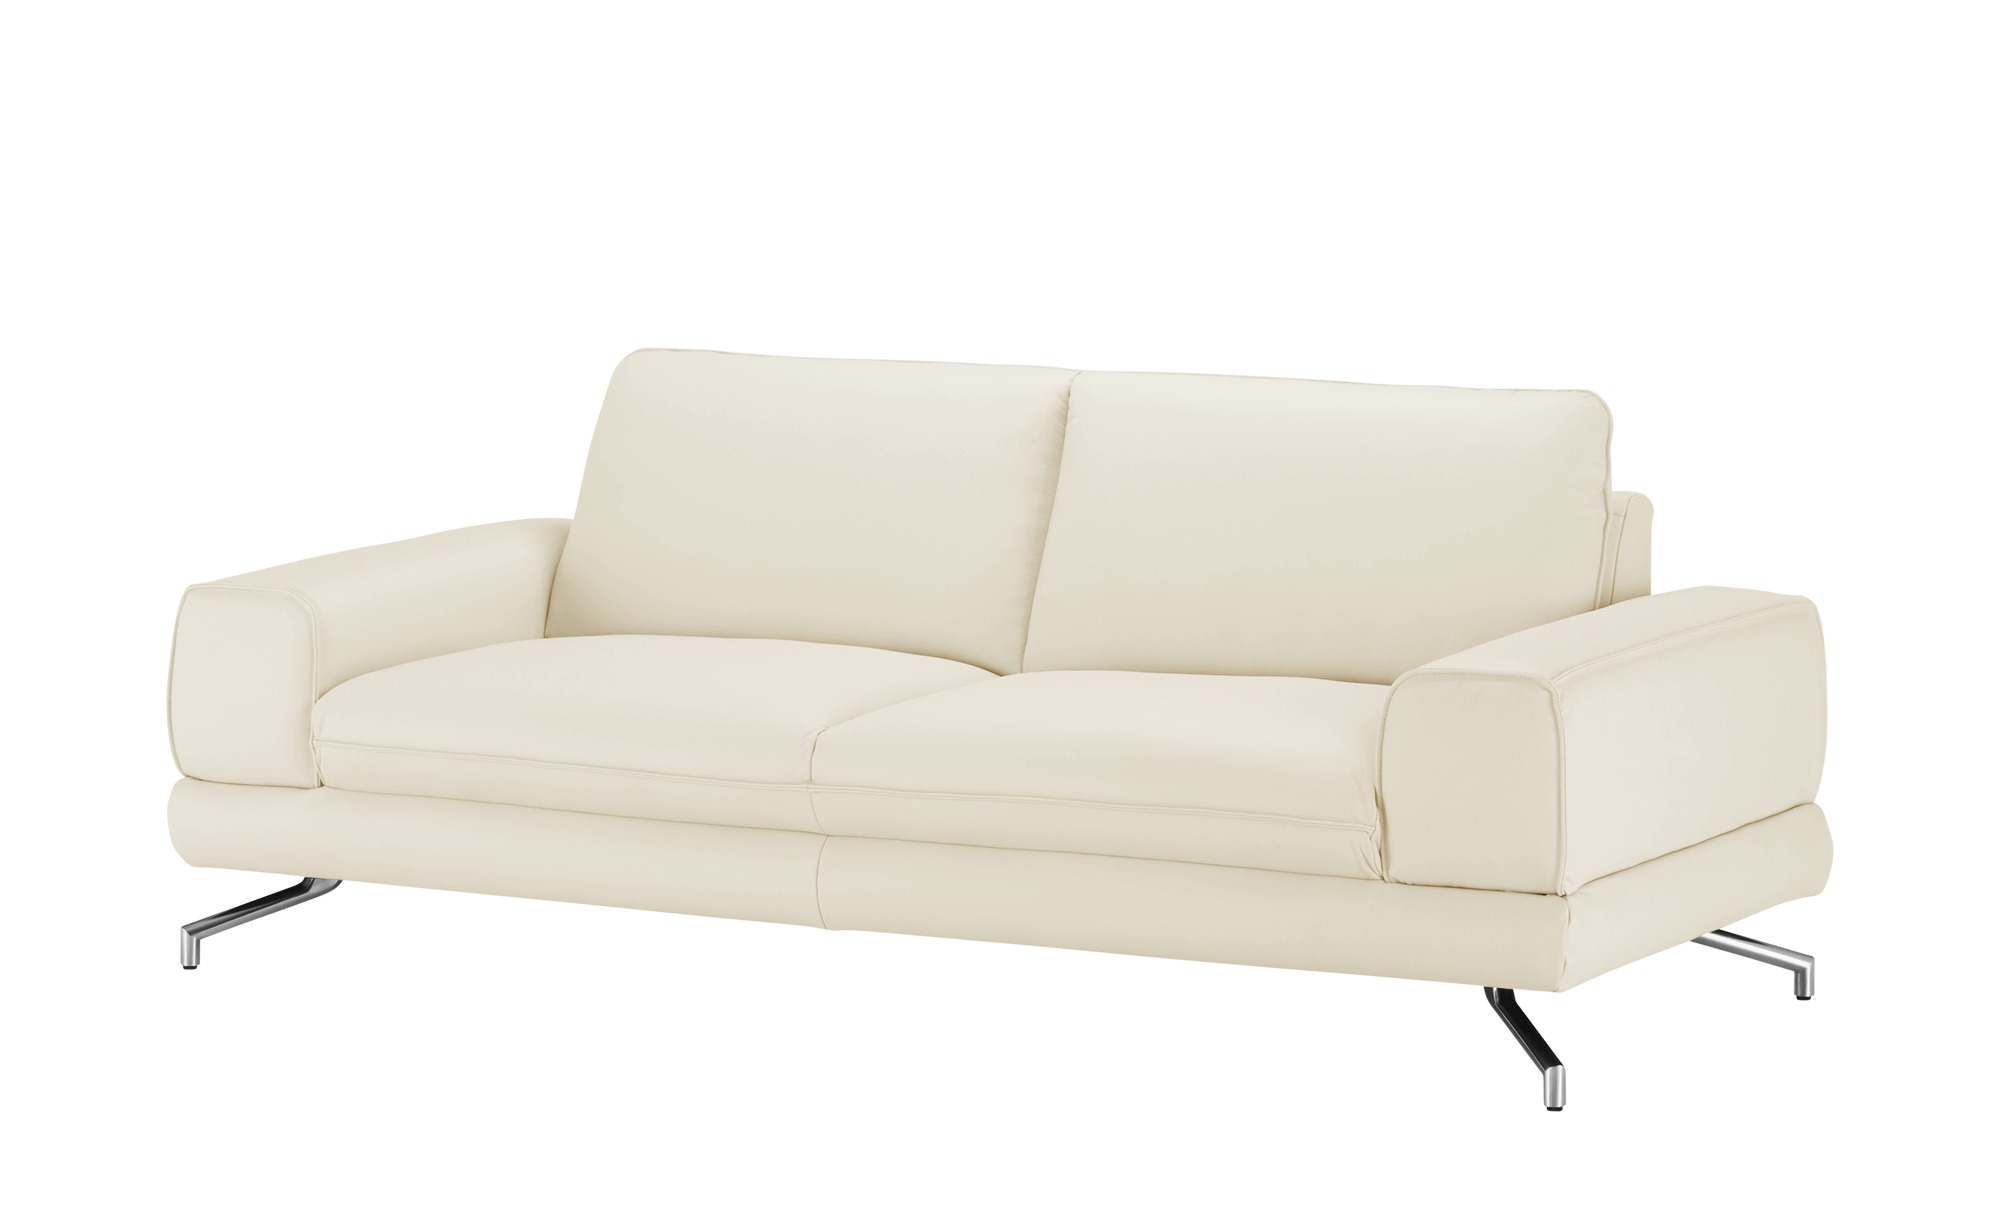 smart sofa bonika 3 sitzer creme m bel h ffner. Black Bedroom Furniture Sets. Home Design Ideas